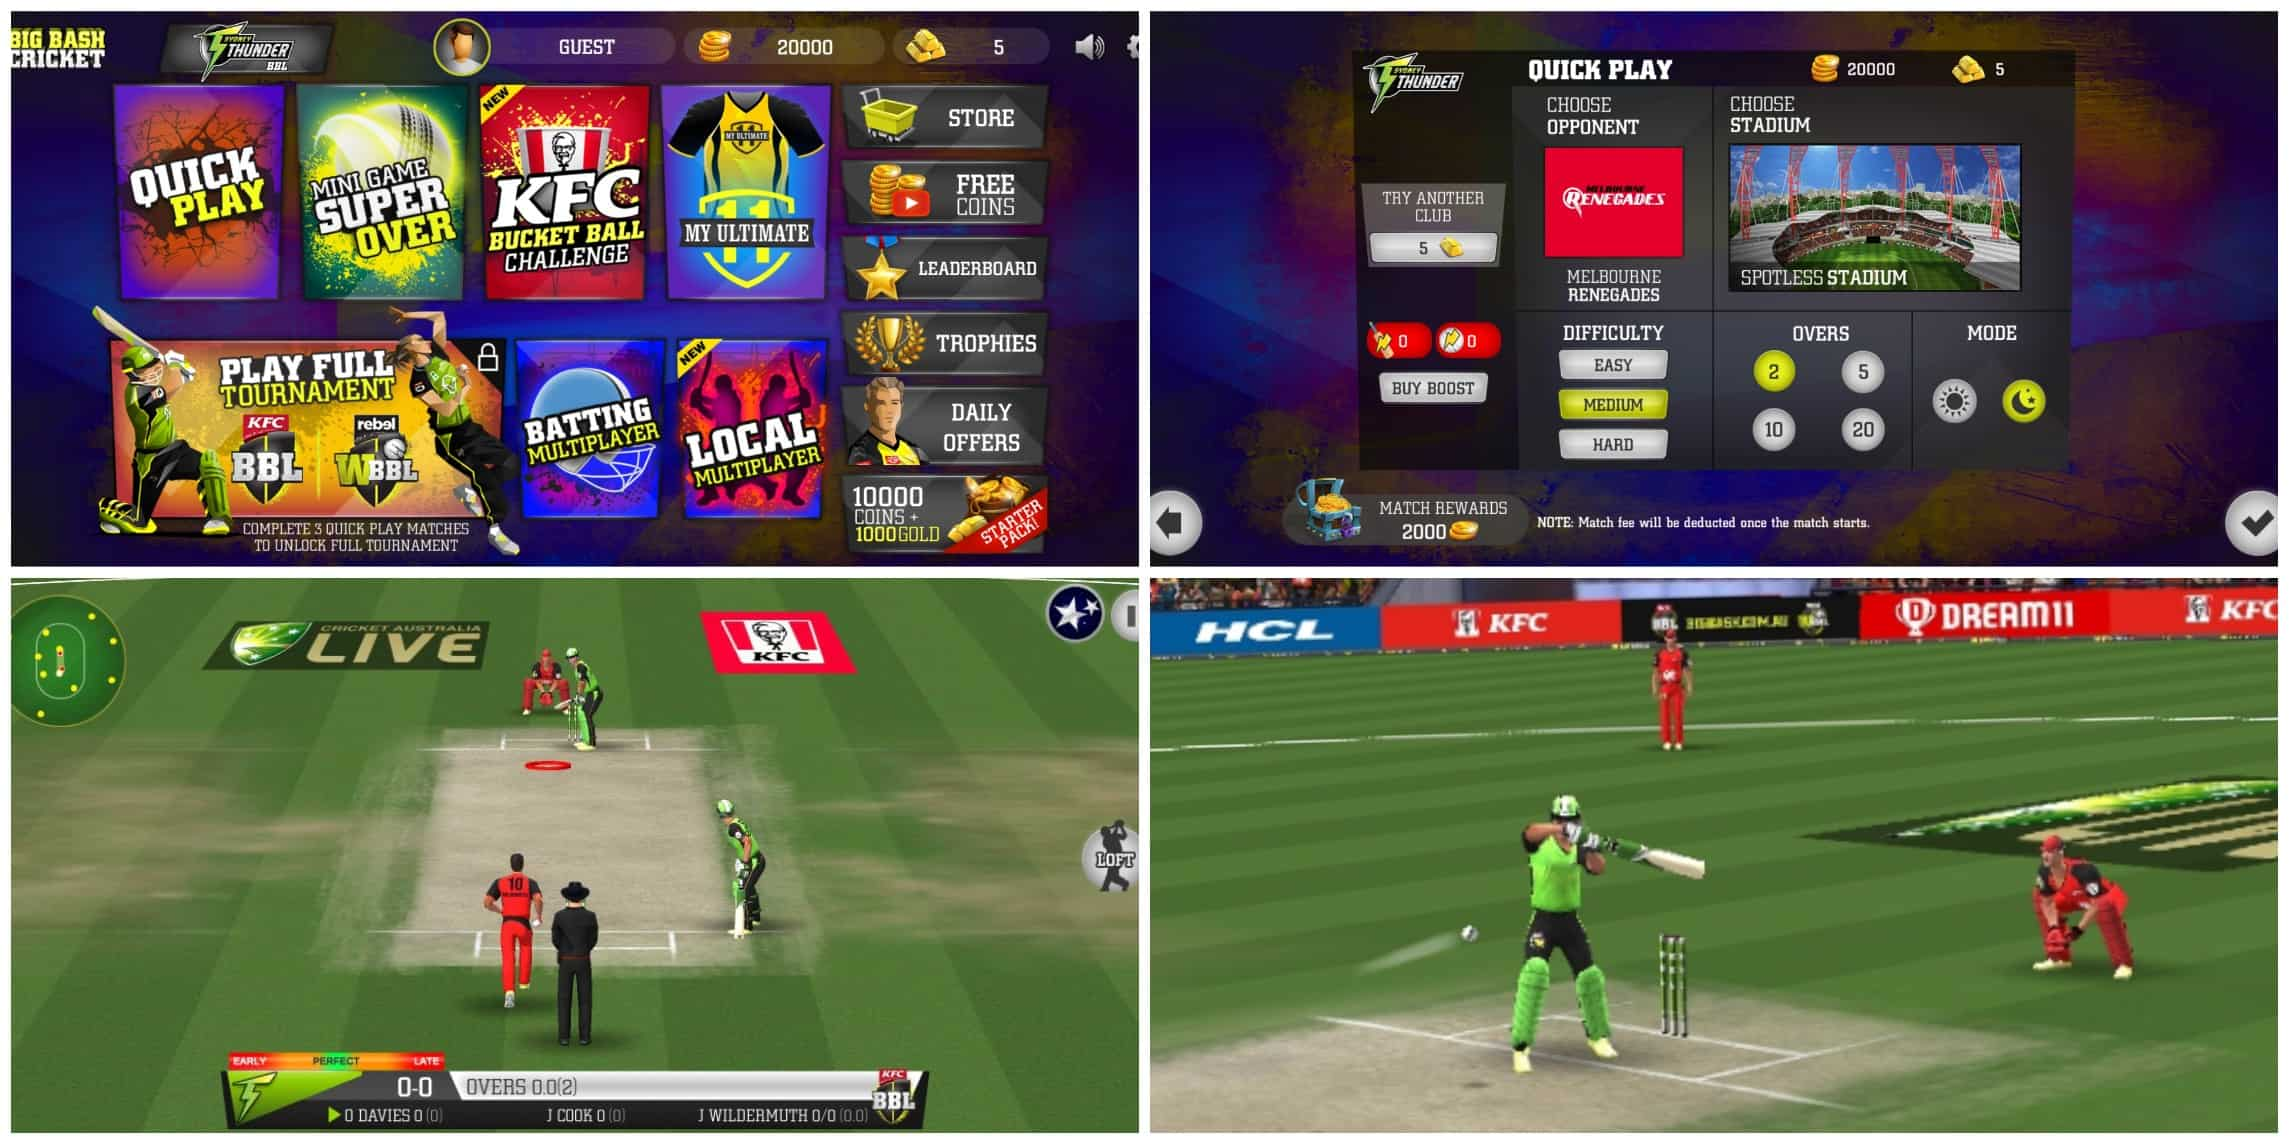 Big Bash Cricket - Best Offline cricket game